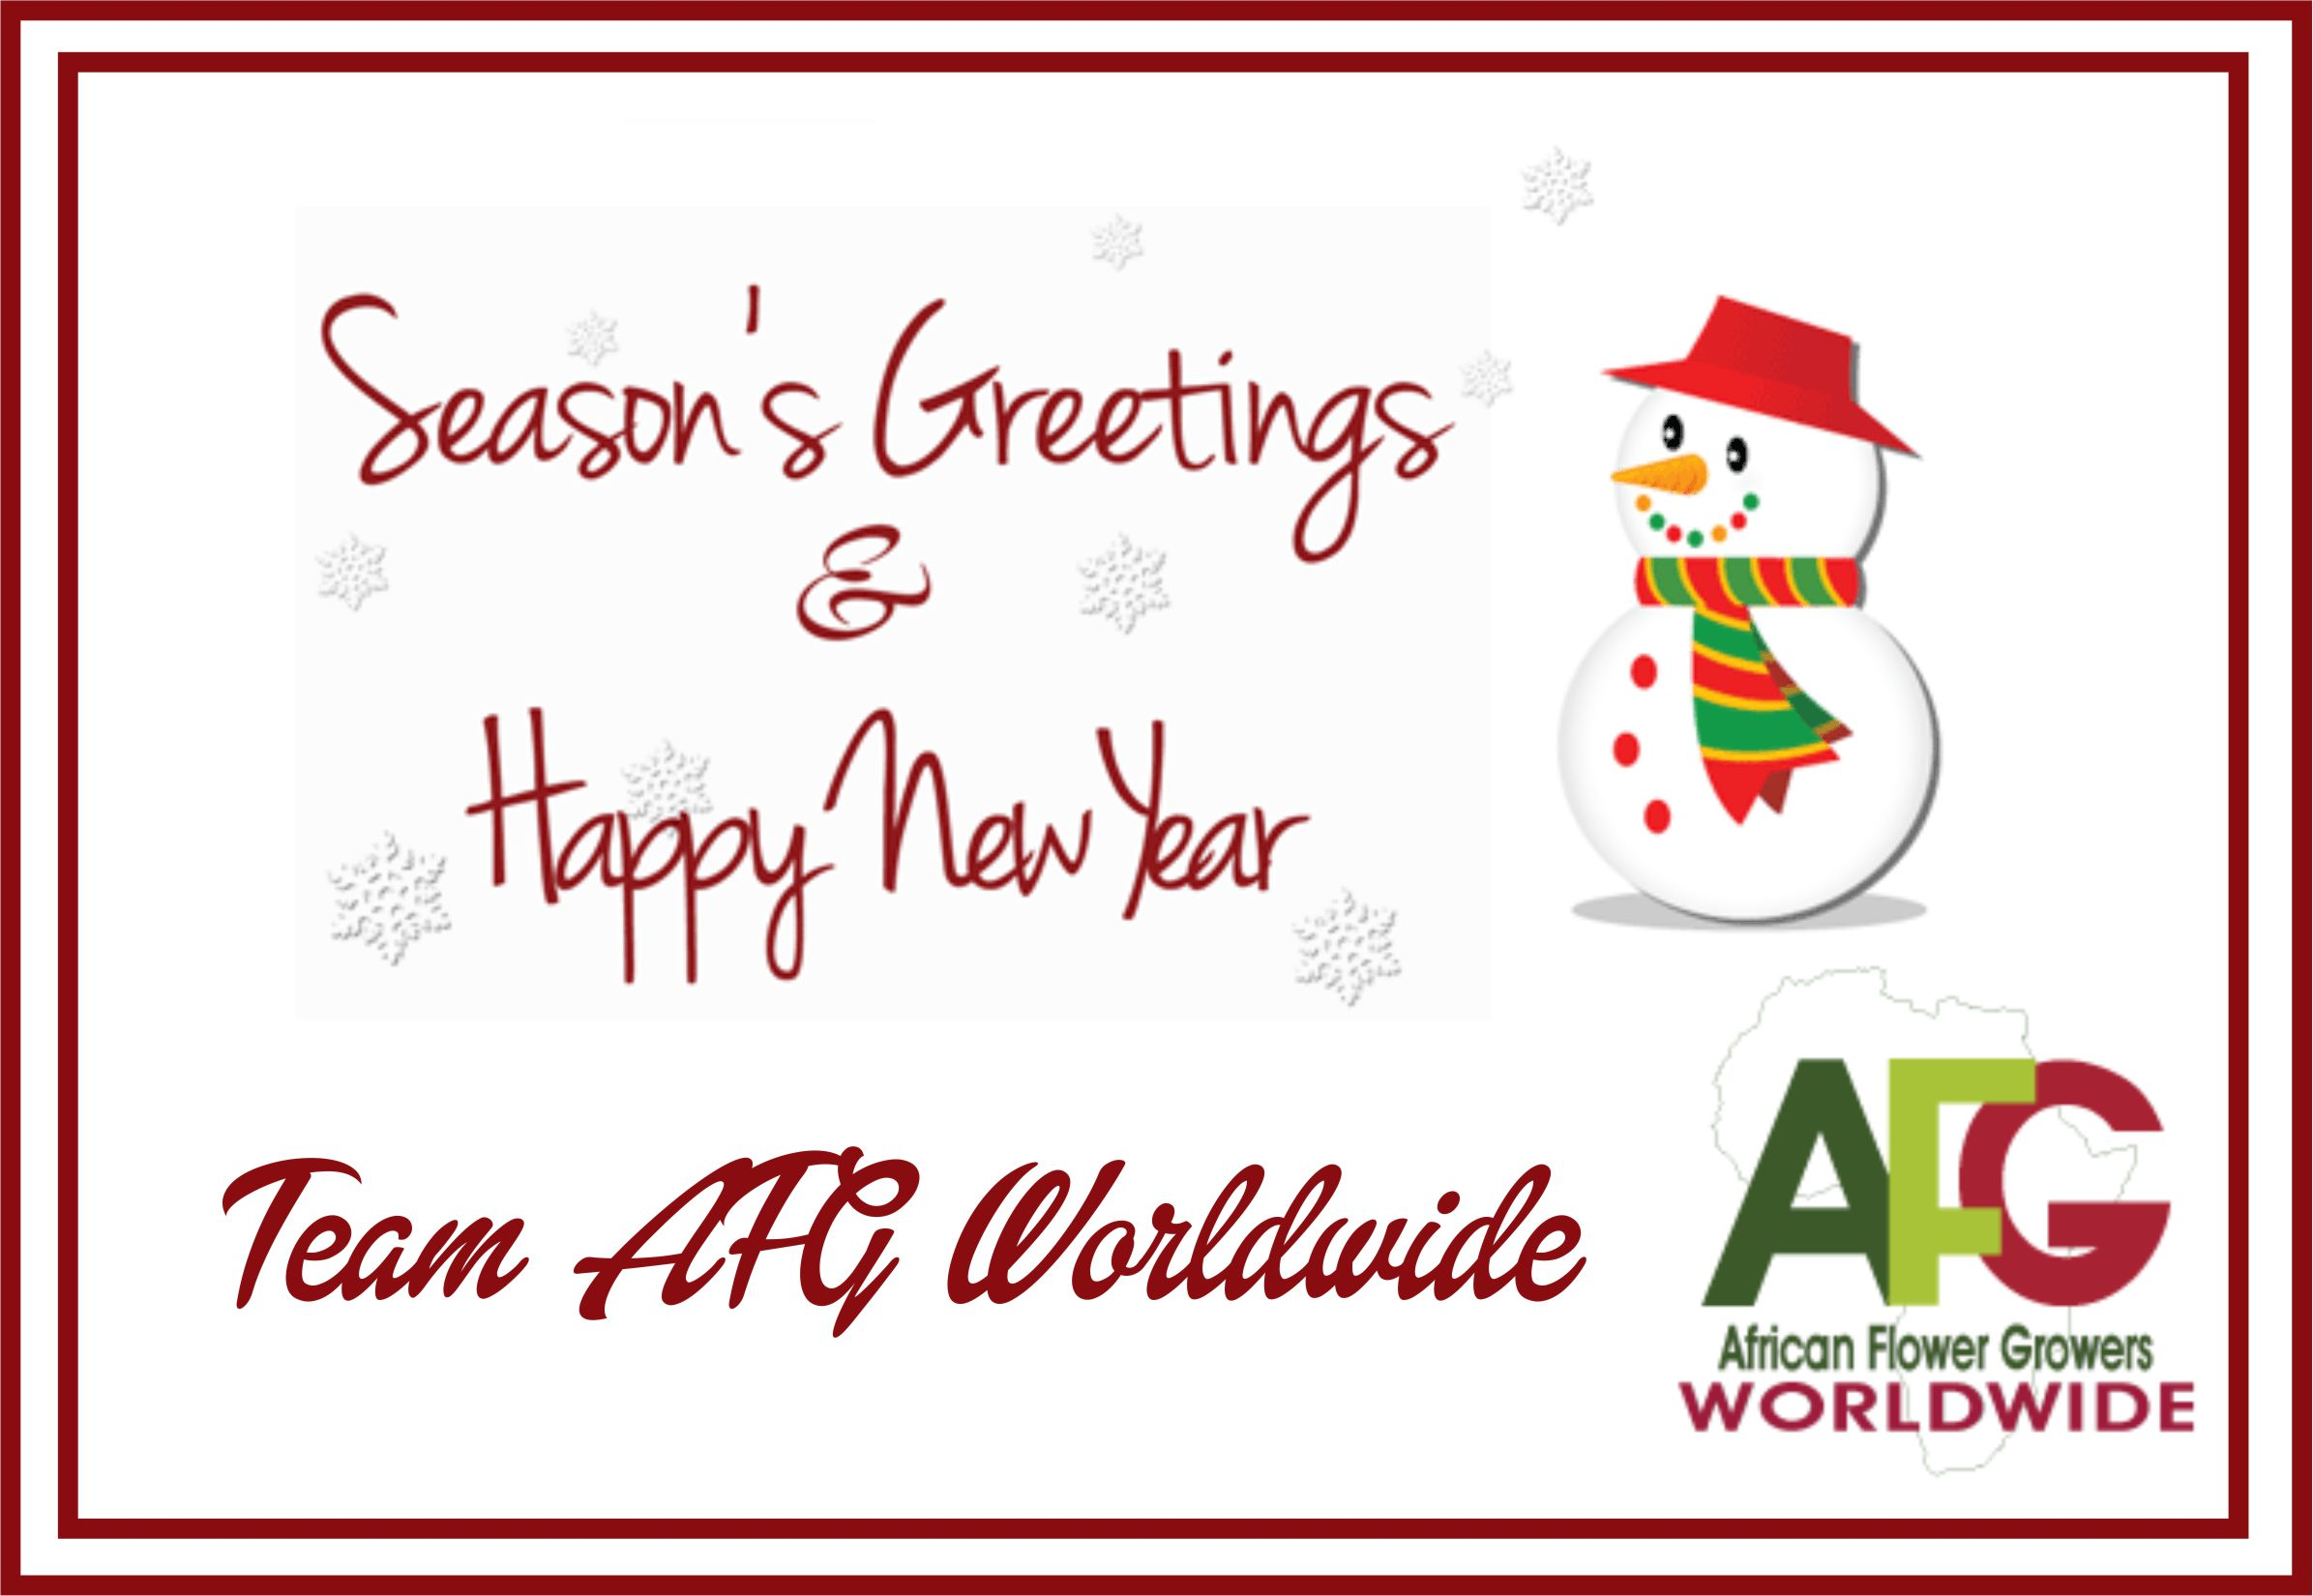 Seasons greetings and a happy 2017 afg worldwide seasons greetings from afg worldwide m4hsunfo